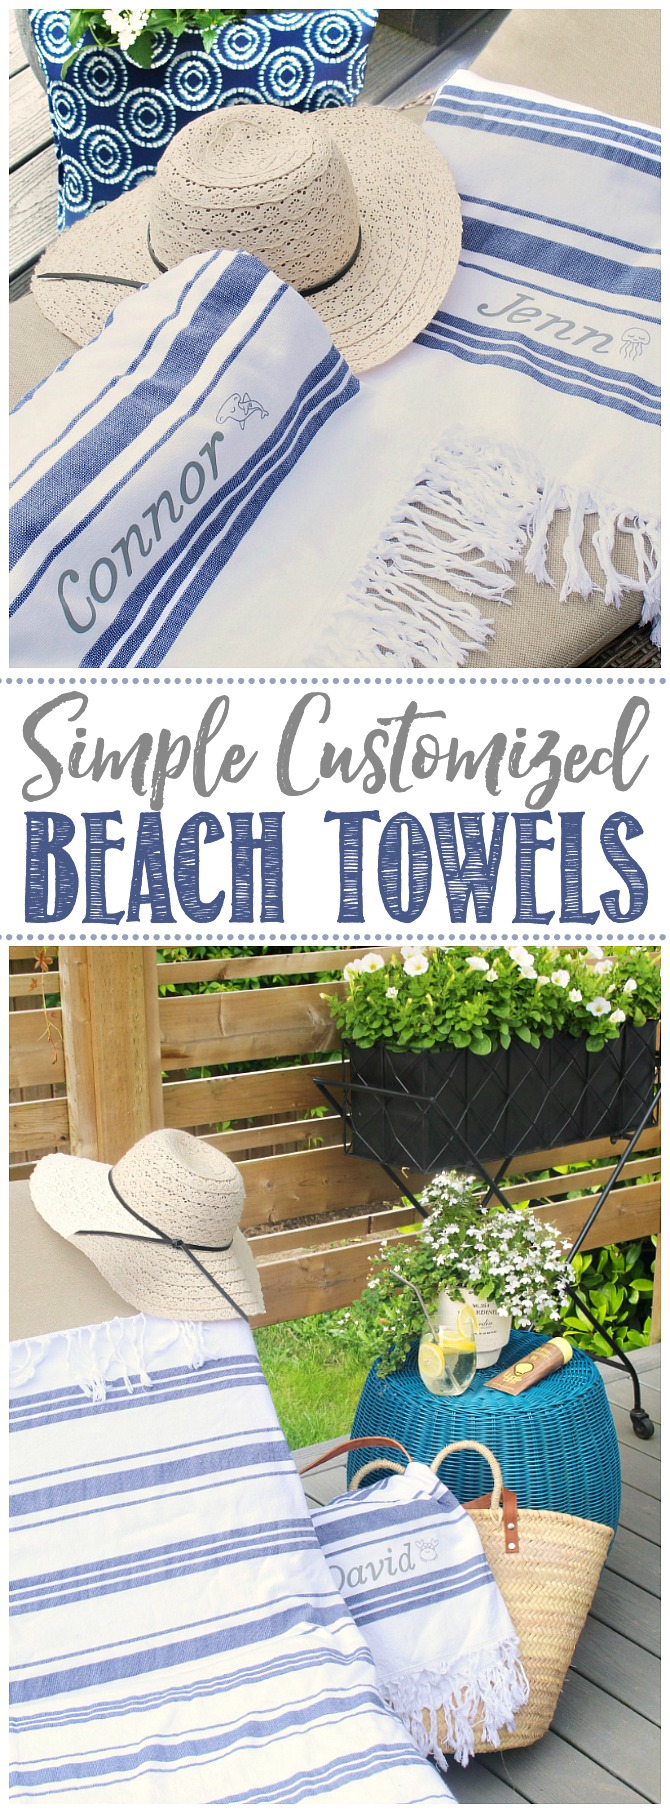 Custom beach towels on a patio lounger with sun hat.